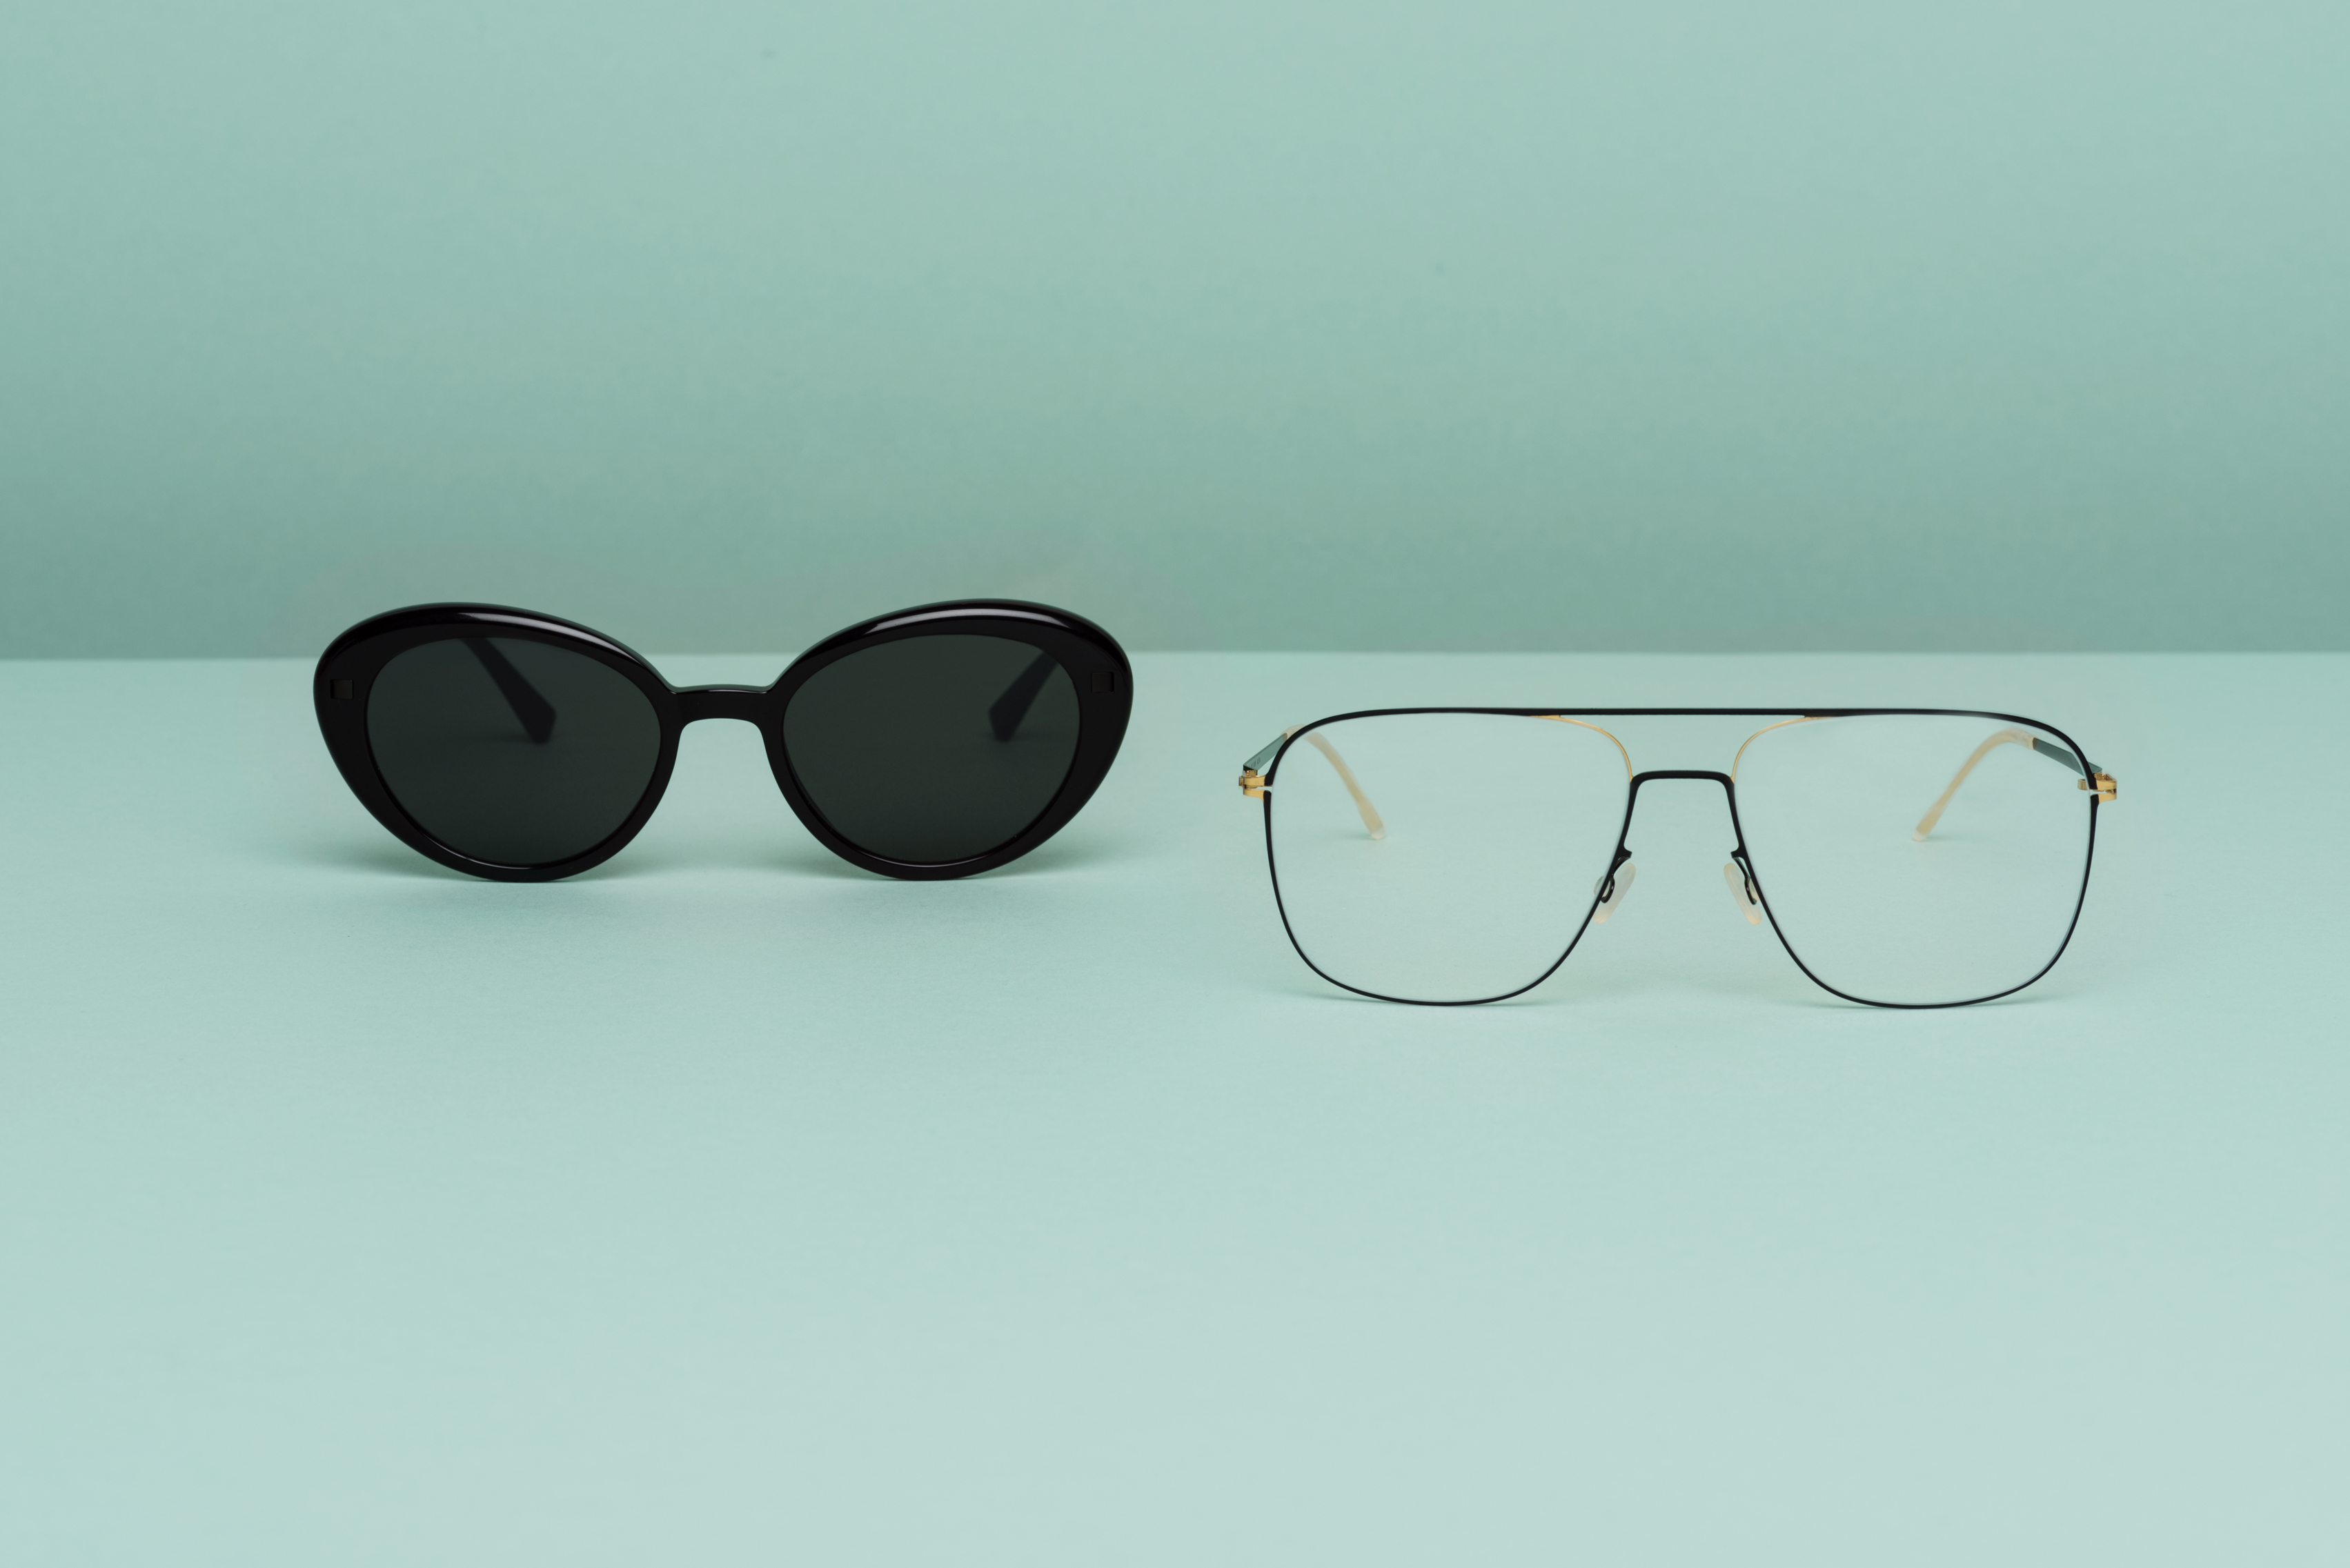 MYKITA Eyewear New Arrivals